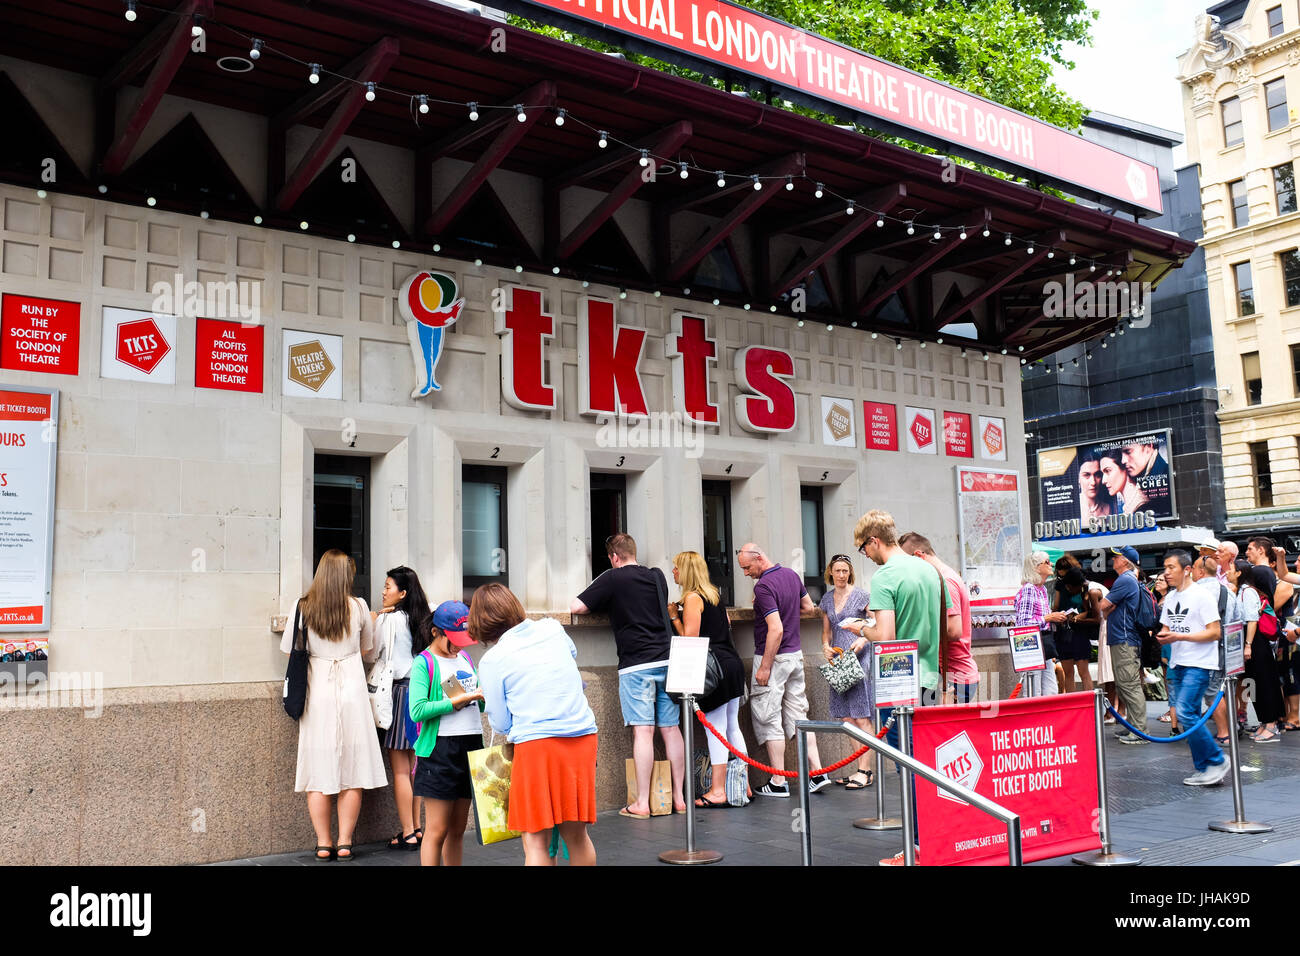 The theatre ticket booth in Leicester Square, London, England. Stock Photo